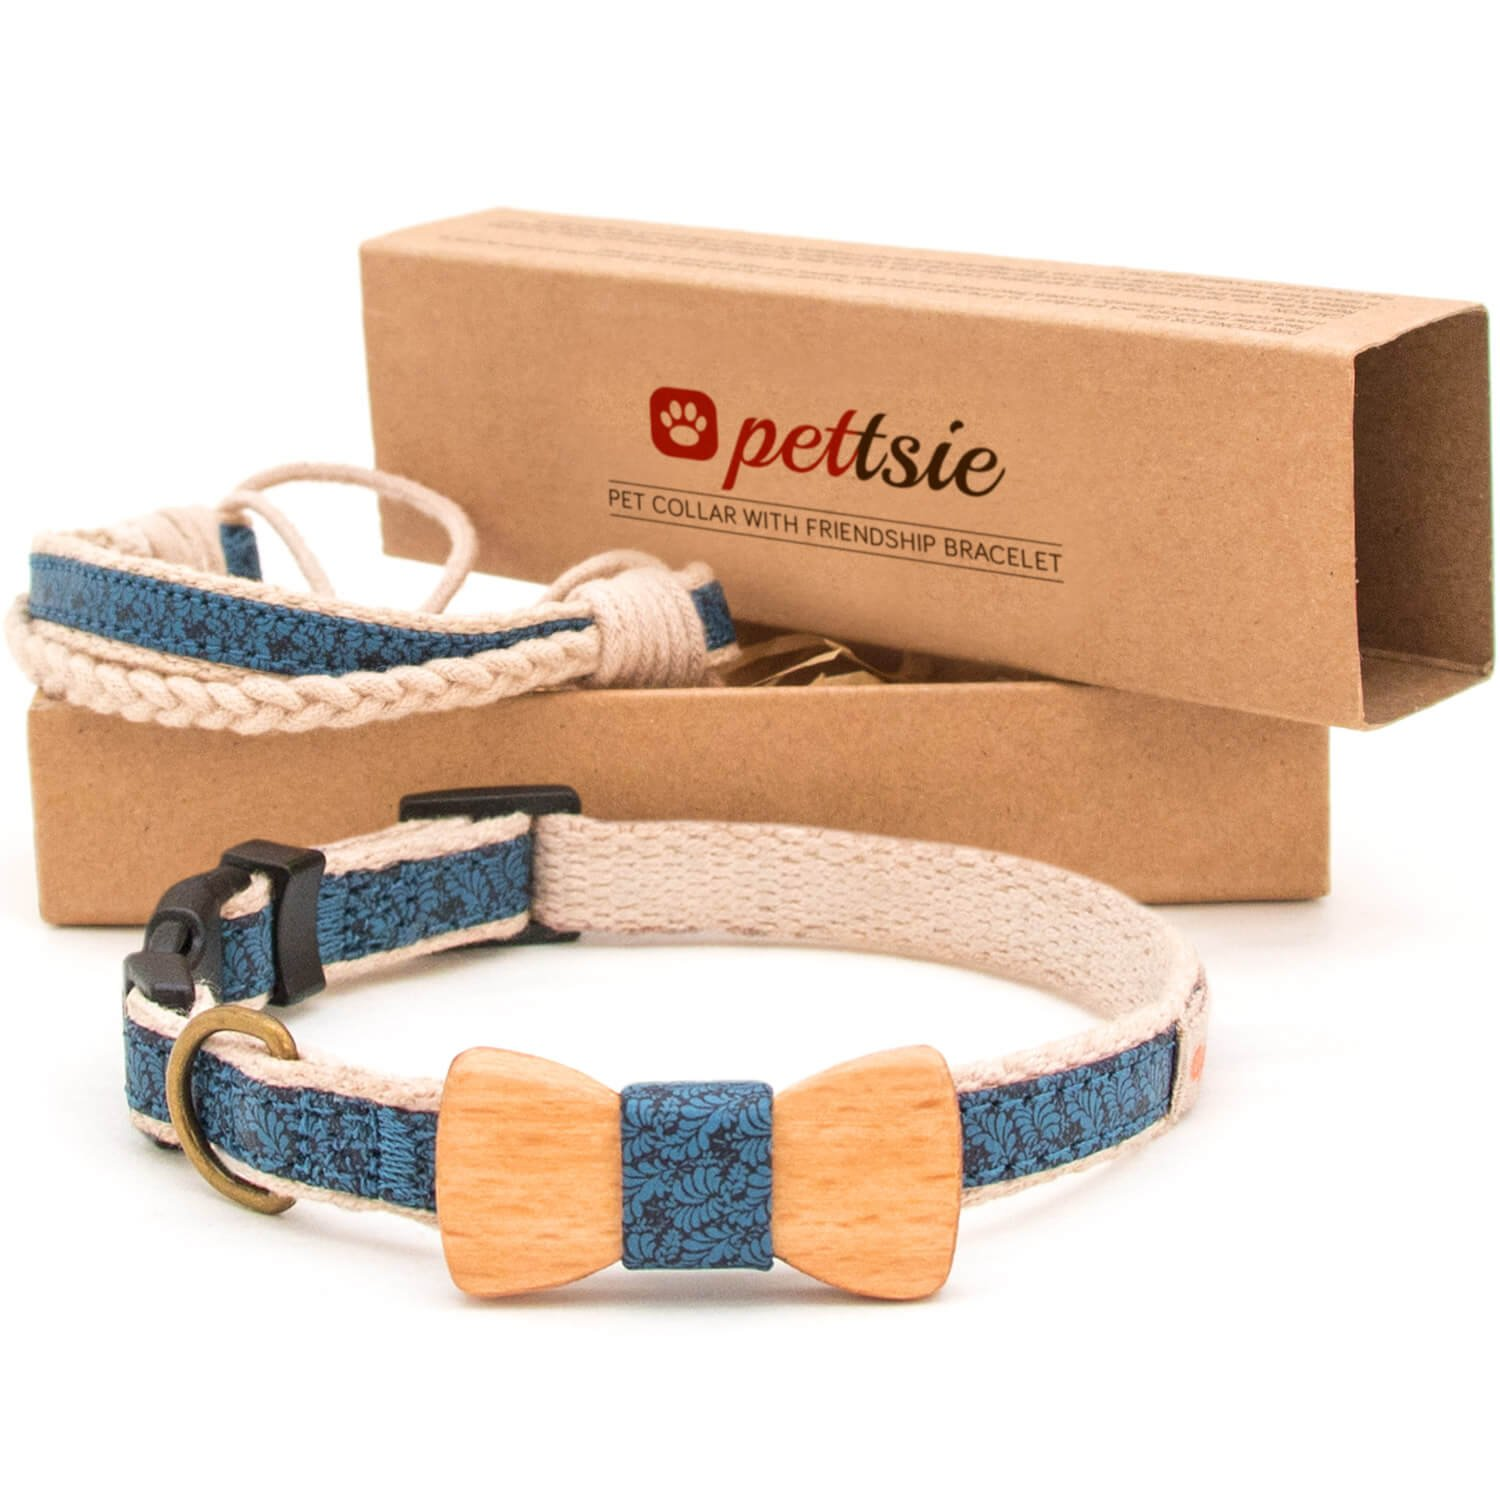 bluee S bluee S Pettsie Dog Collar with Bow Tie Pet and Friendship Bracelet, Durable Hemp for Extra Safety, 3 Easy Adjustable Sizes, Comfortable and Soft, Strong D-Ring for Easy Leash Attachment